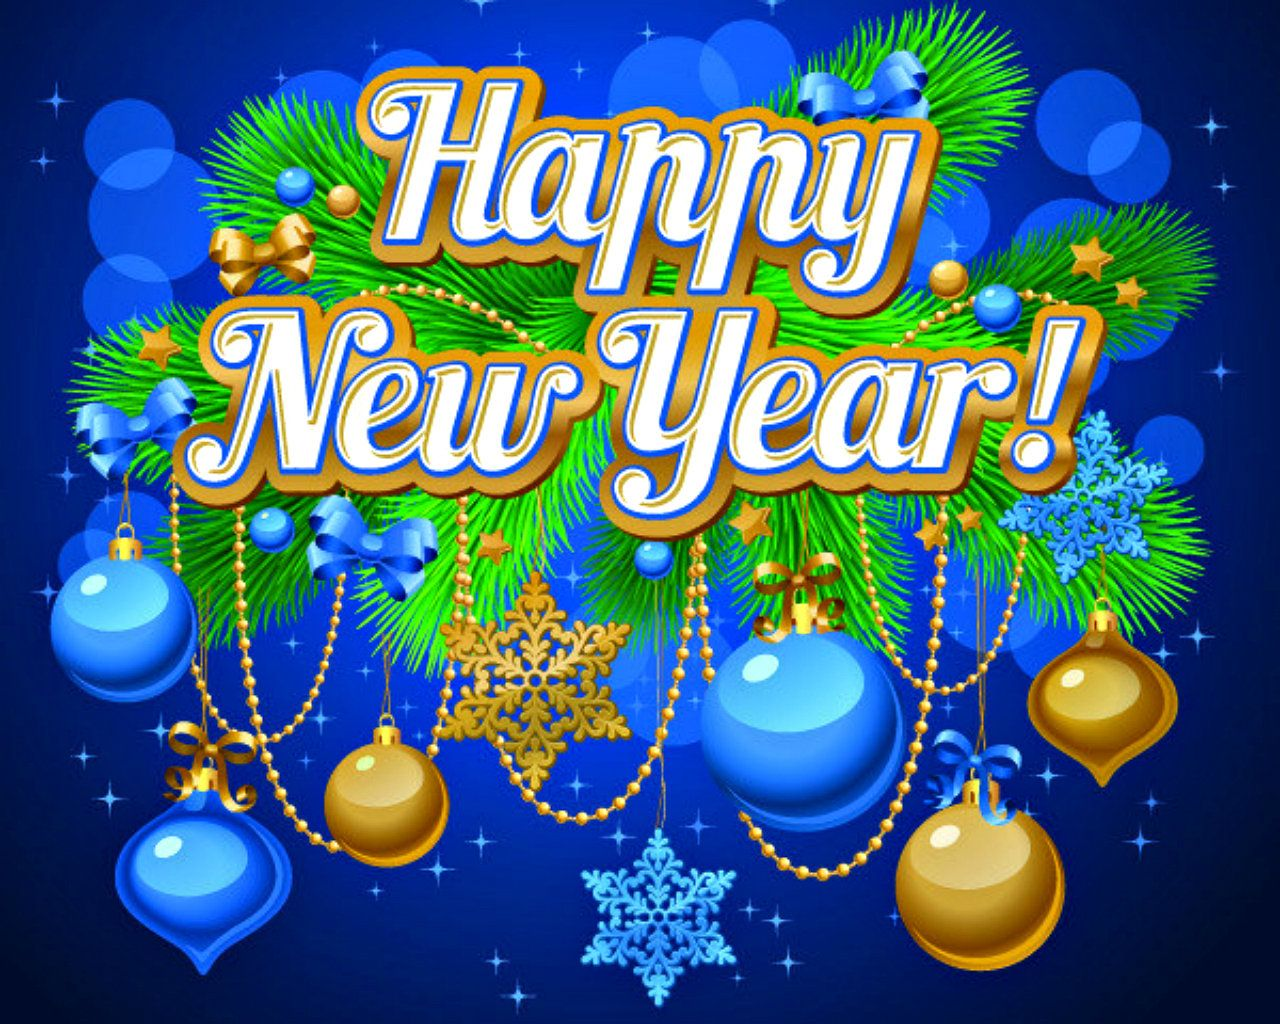 Happy New Year 2017 Best Wishes Cards Happy New Year Wallpaper